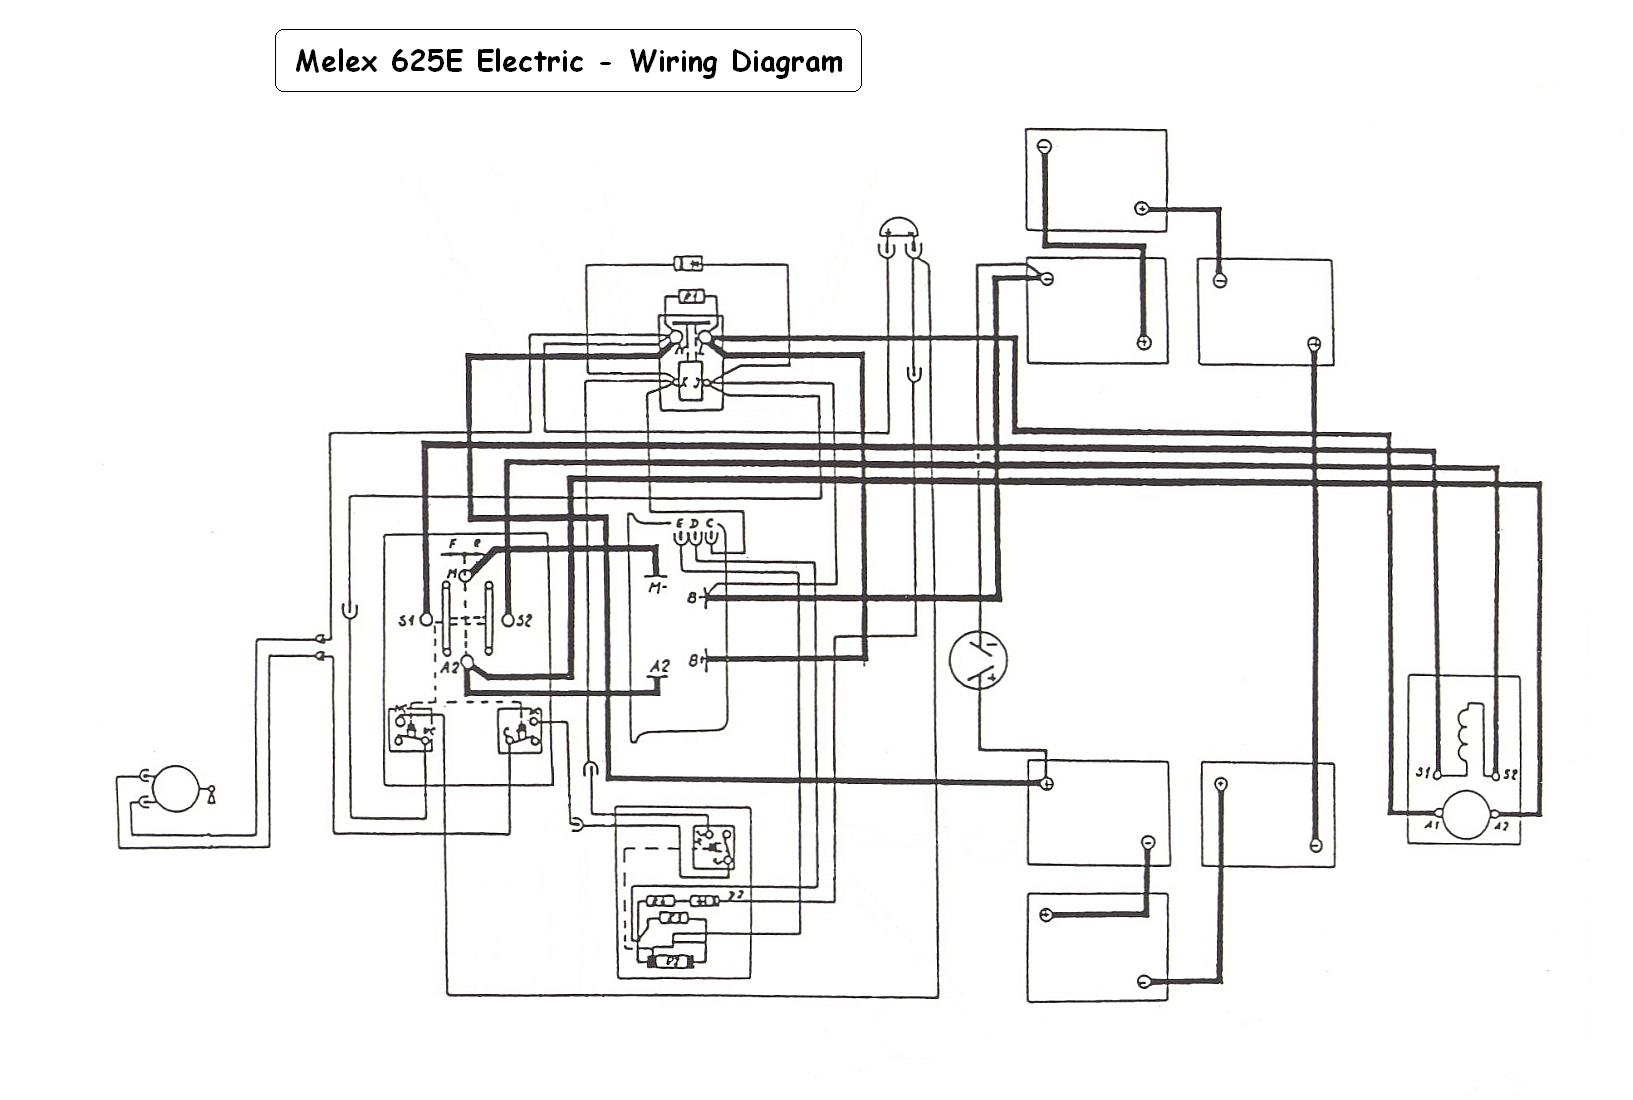 512 melex electric golf cart wiring diagram